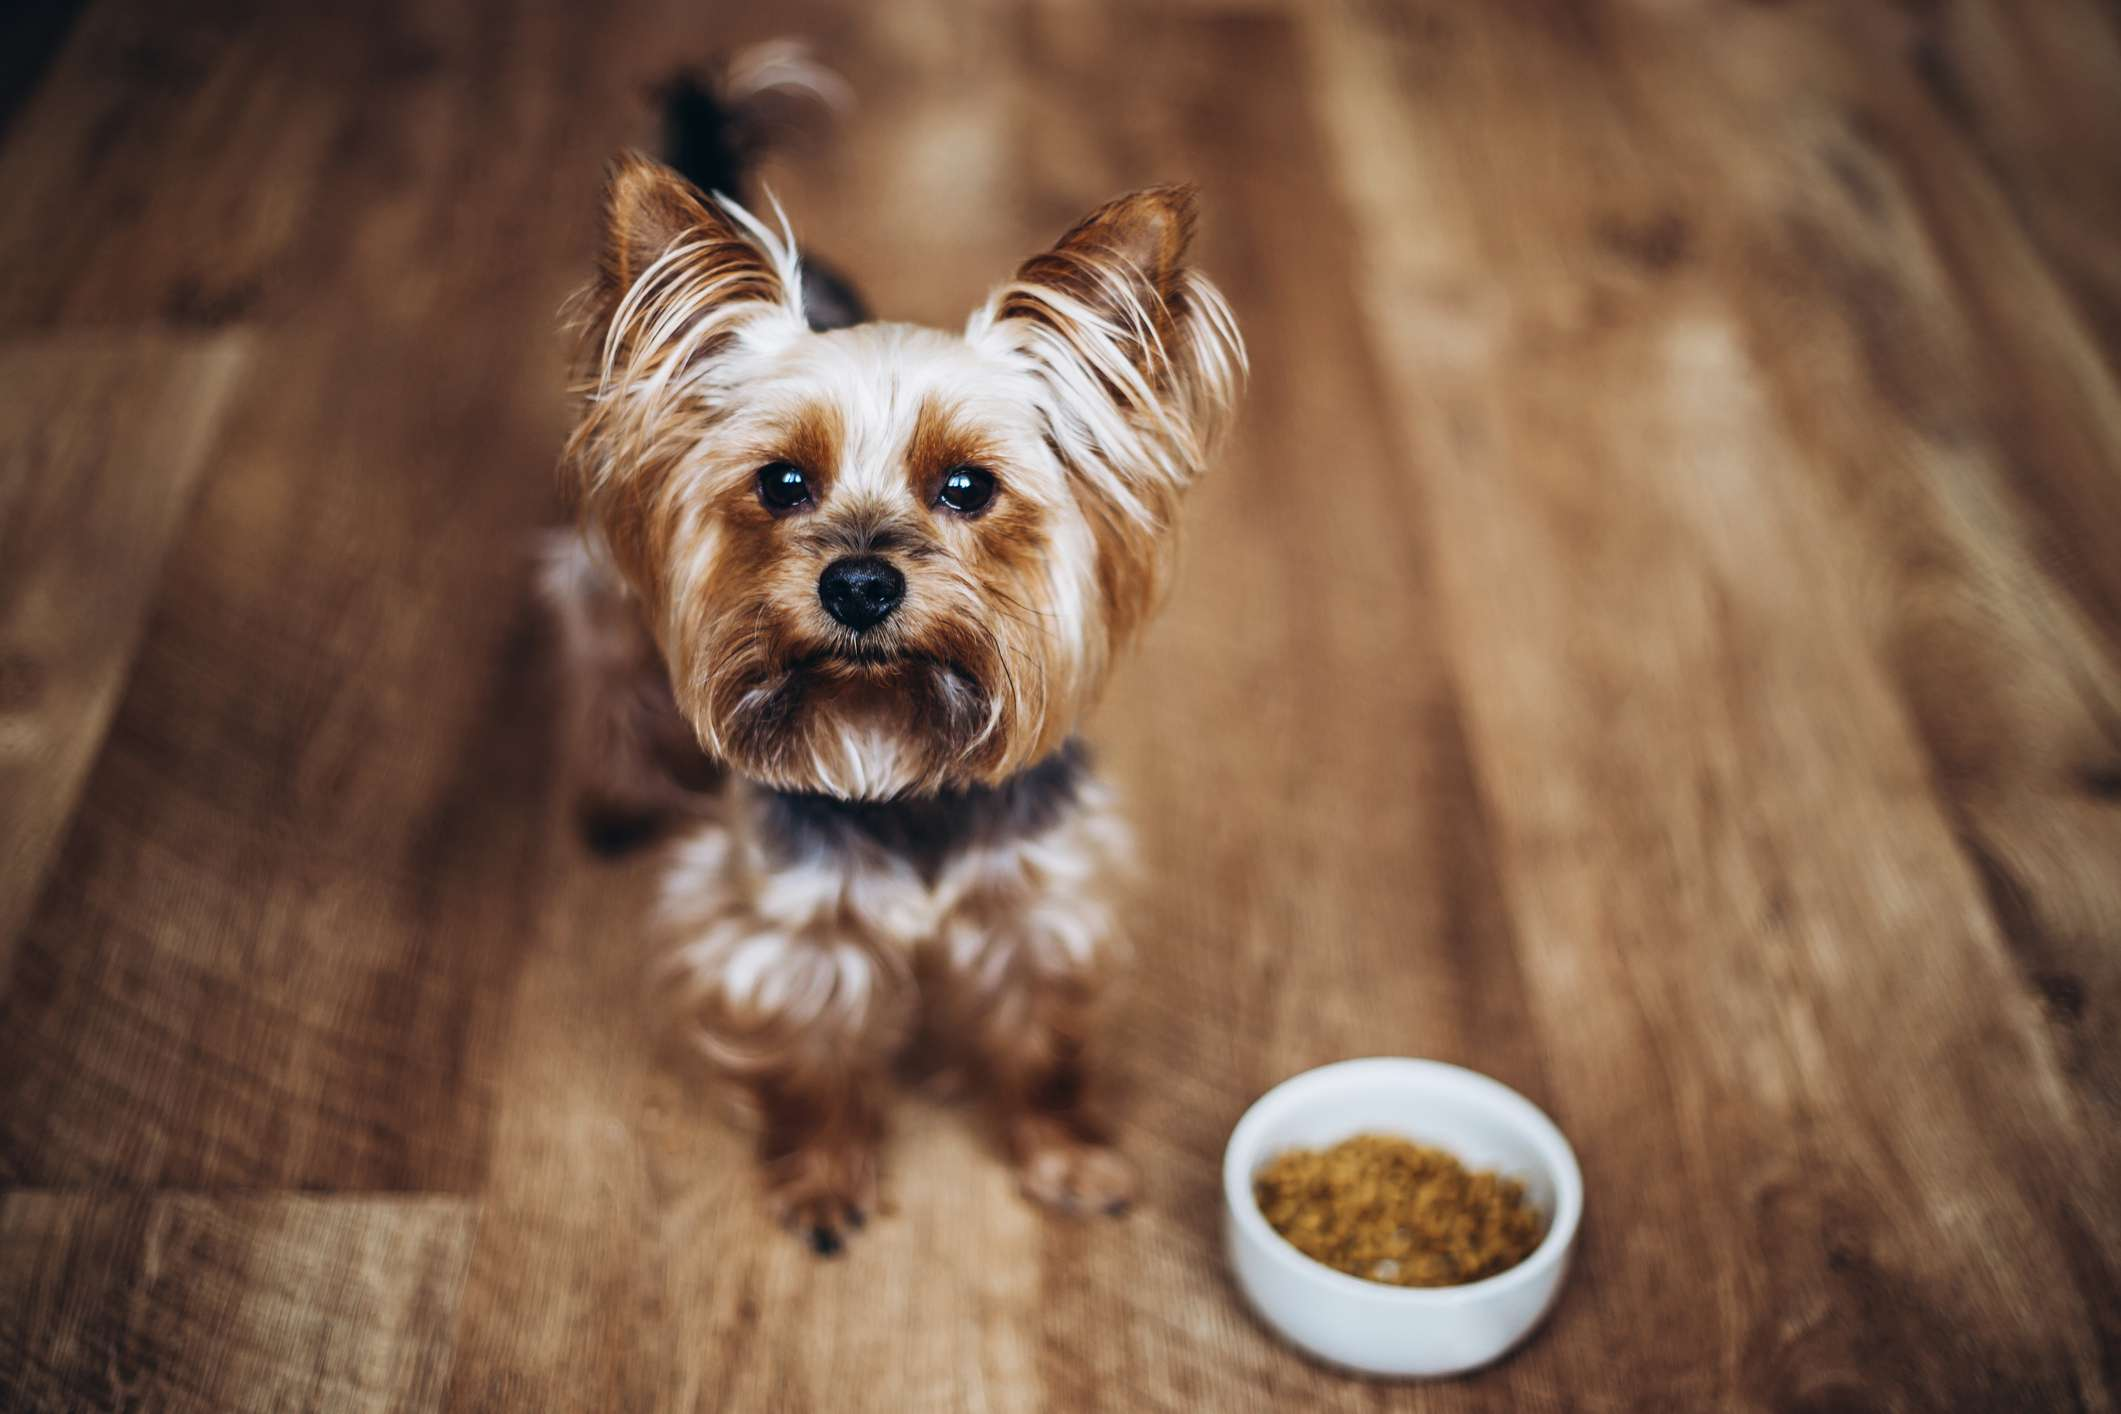 Yorkshire Terrier on wood floor next to bowl of food.